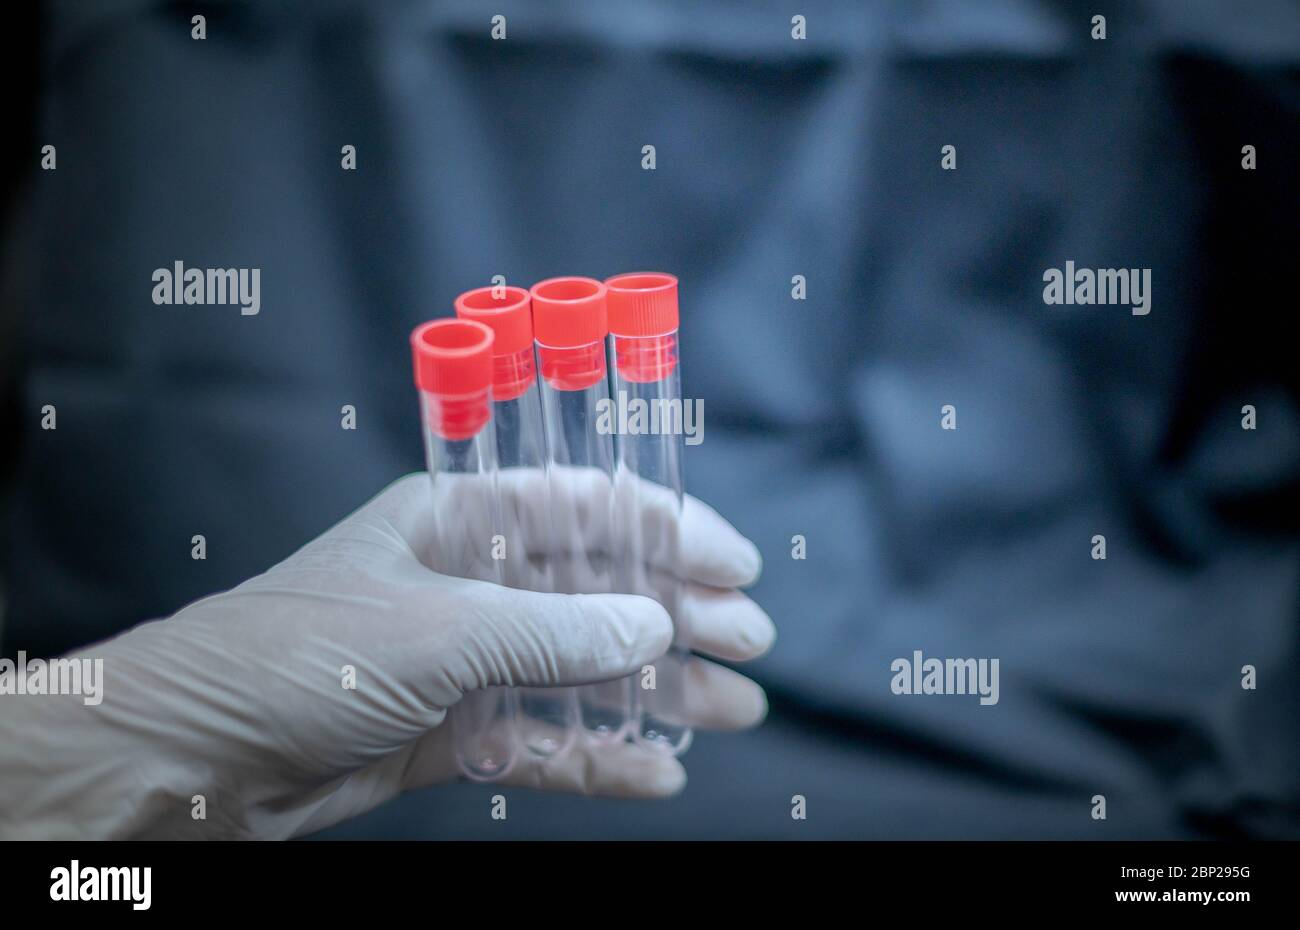 Scientist hand holding test tube and wearing surgical glove preparing to the science experiment in the laboratory room. Stock Photo